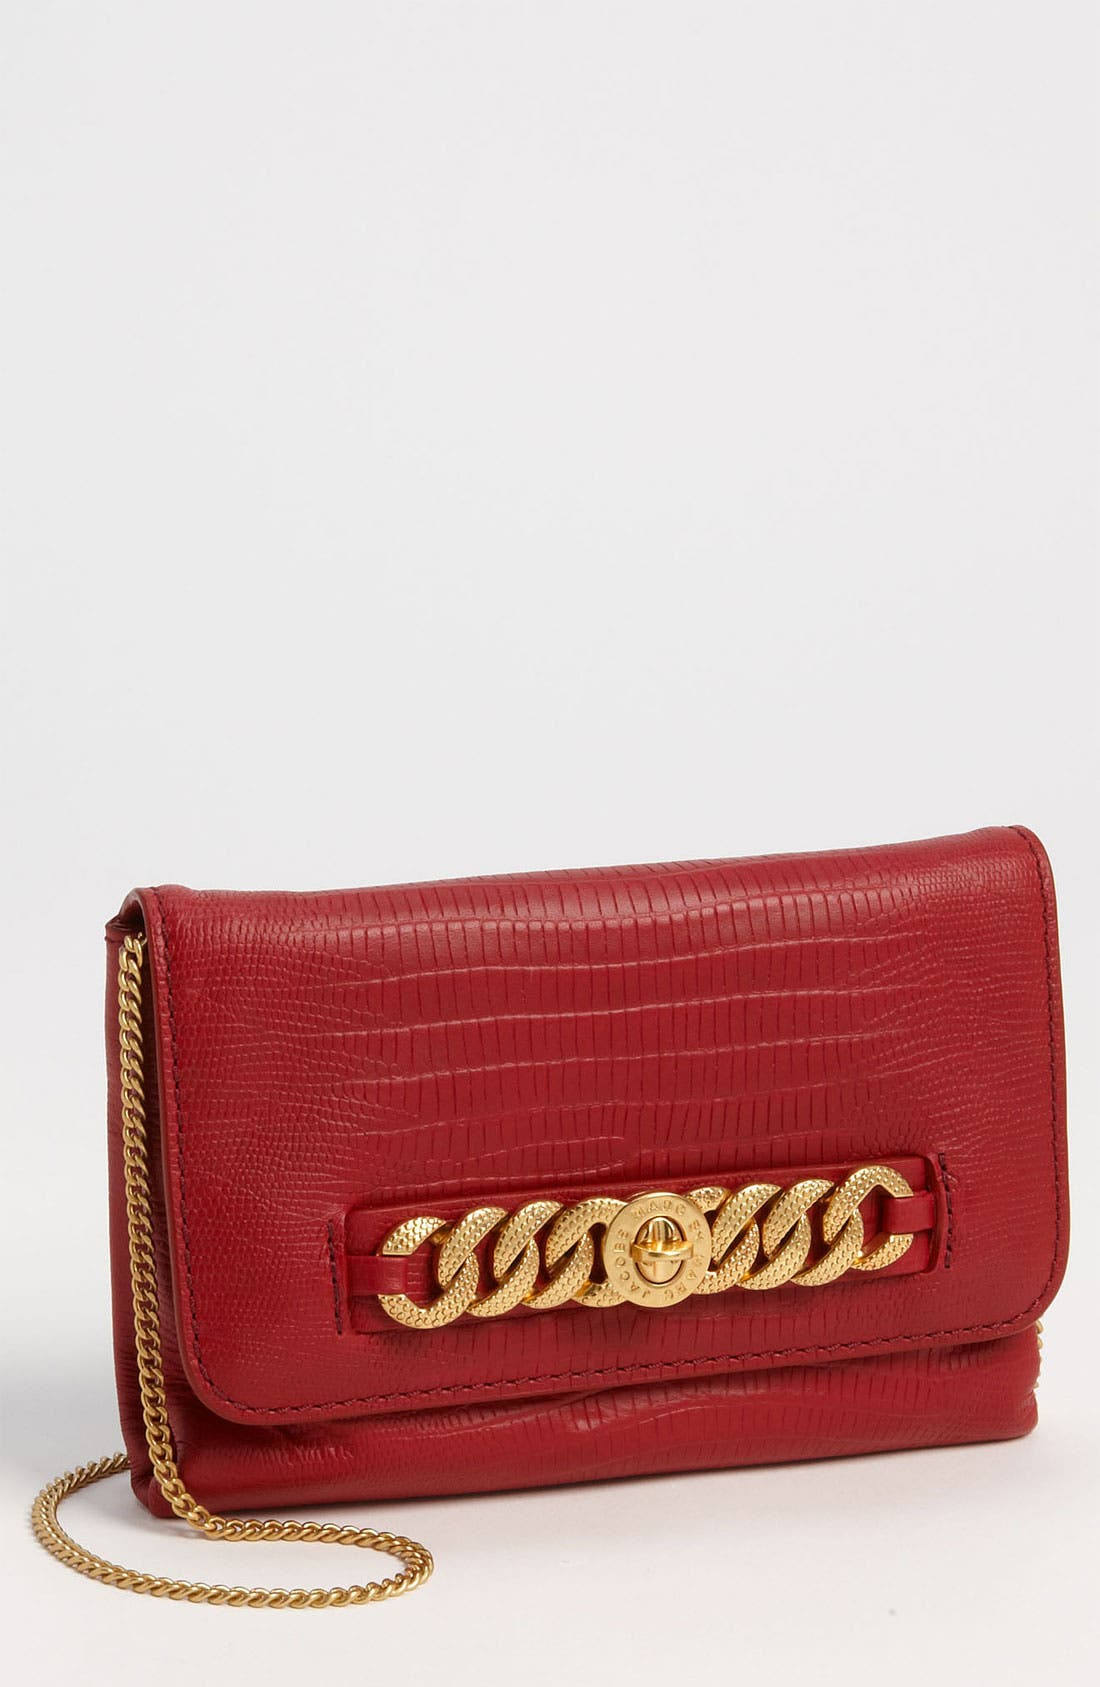 Main Image - MARC BY MARC JACOBS 'Katie Bracelet' Crossbody